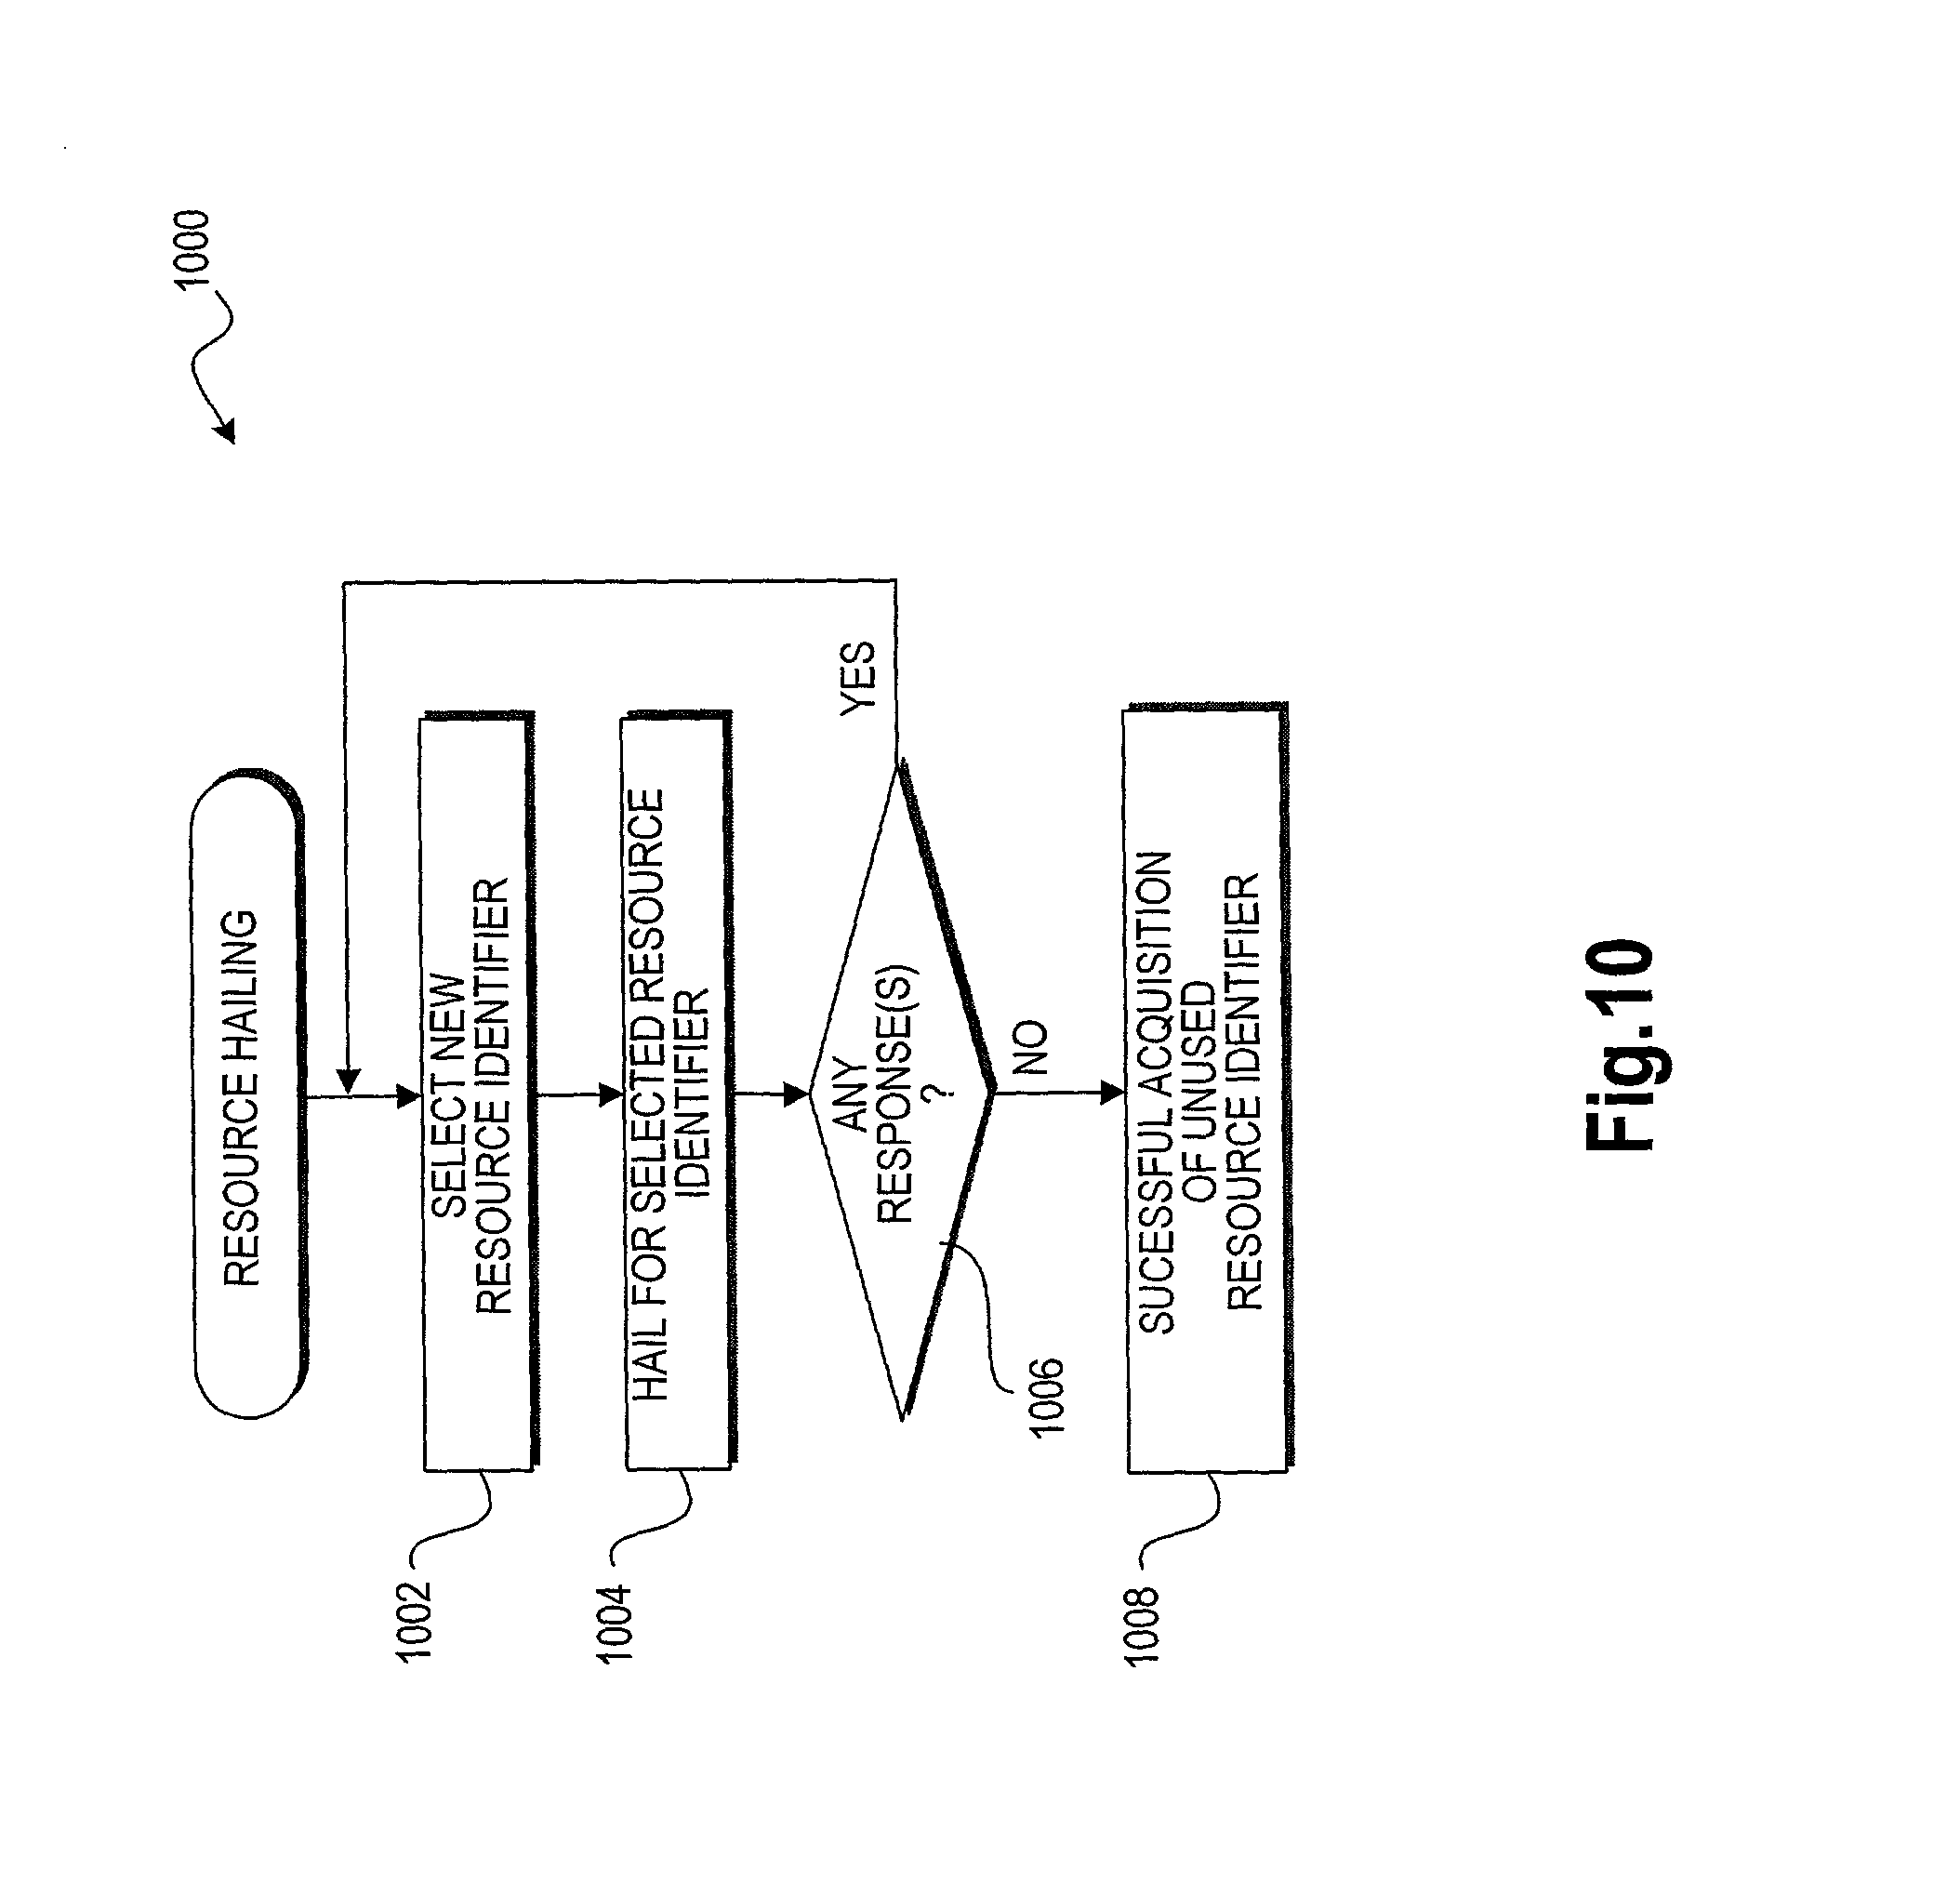 Patent Us20030040819 Method And Apparatus For Providing